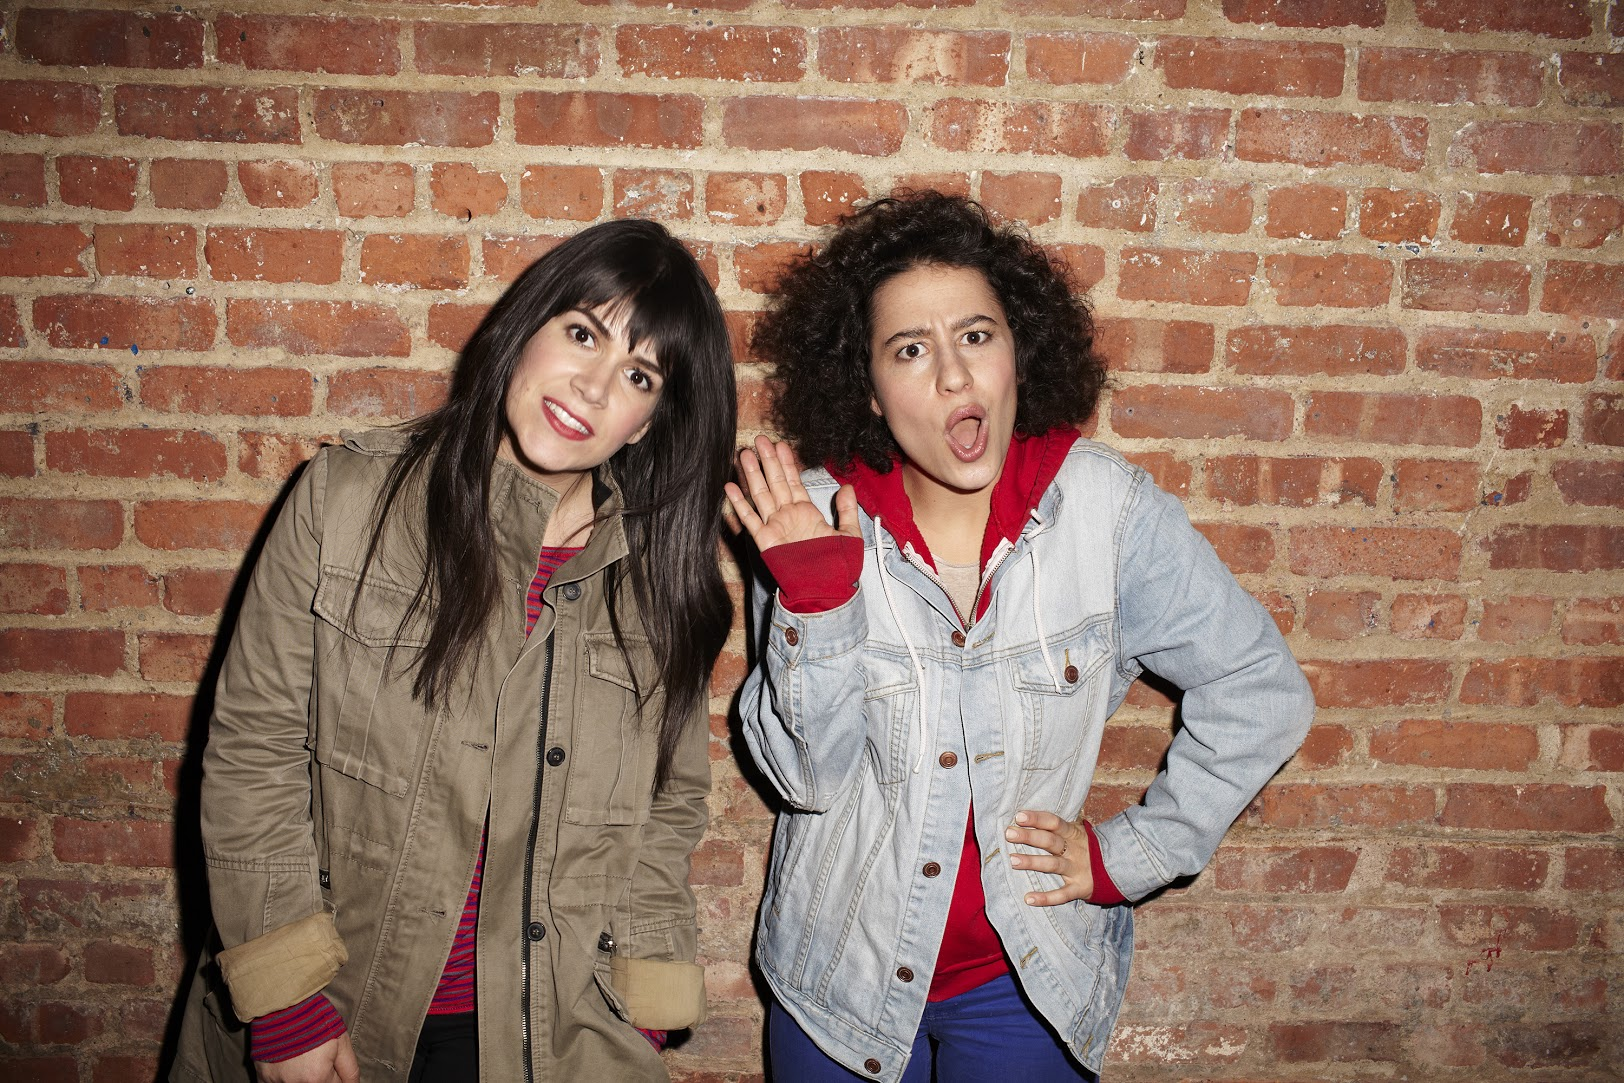 l-r: Abbi Jacobson, Ilana GlazerPhoto Credit: Lane Savage